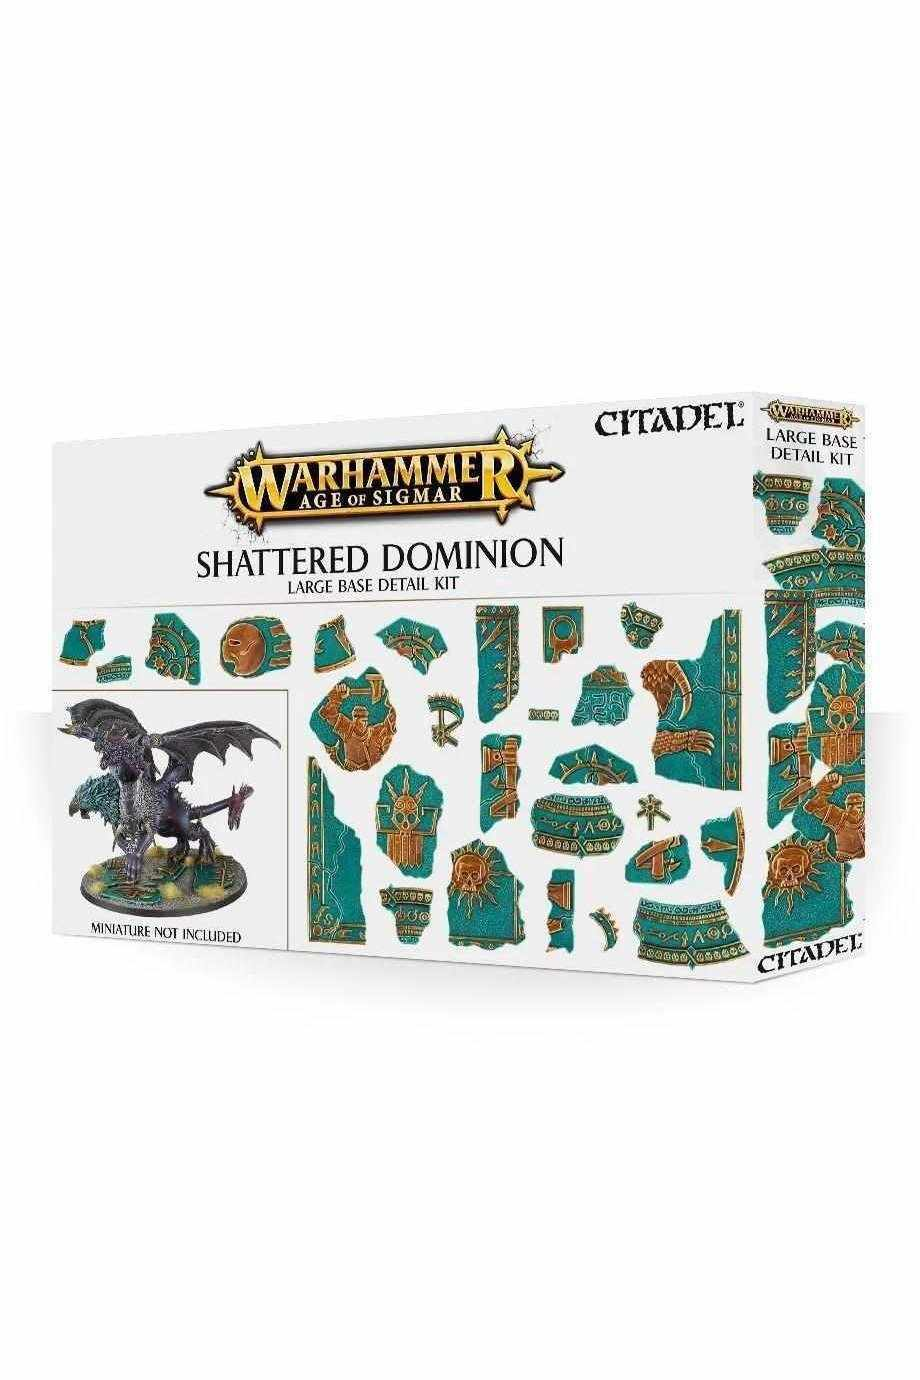 age-of-sigmar-shattered-dominion-large-base-kit-games-workshop-5011921073146-thegamersden.com